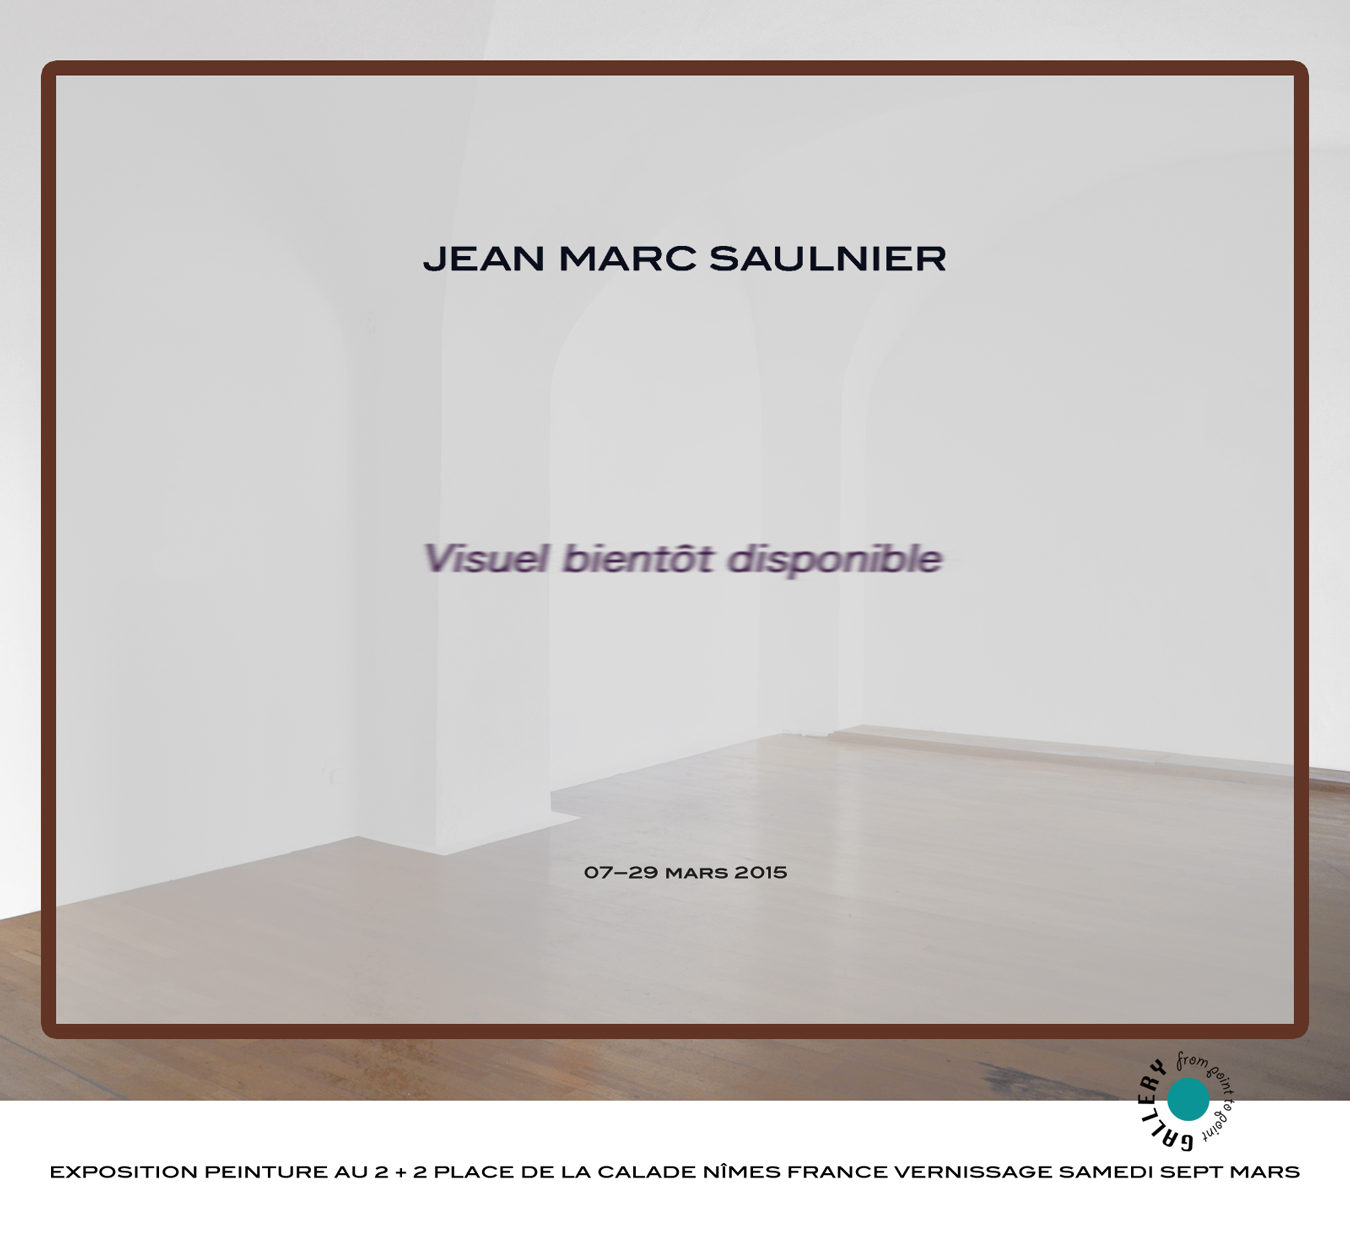 Jean-Marc-Saulnier-Visuel-Disponible-Point-to-Point-Art-Studio.jpg